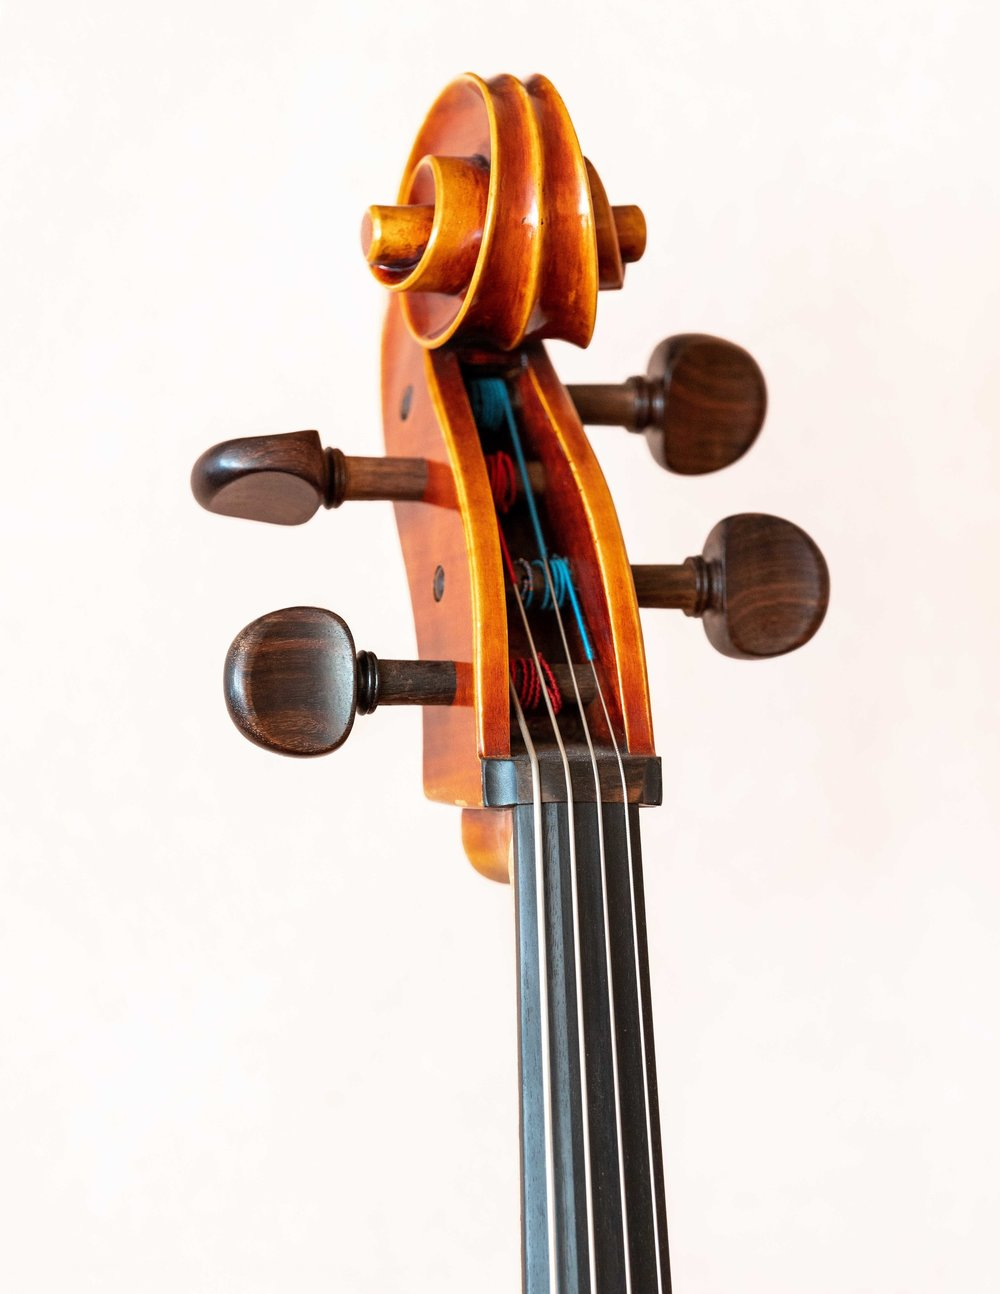 _DS20728_Copyright_sRGB_Relative_Single Finished Violin.jpg